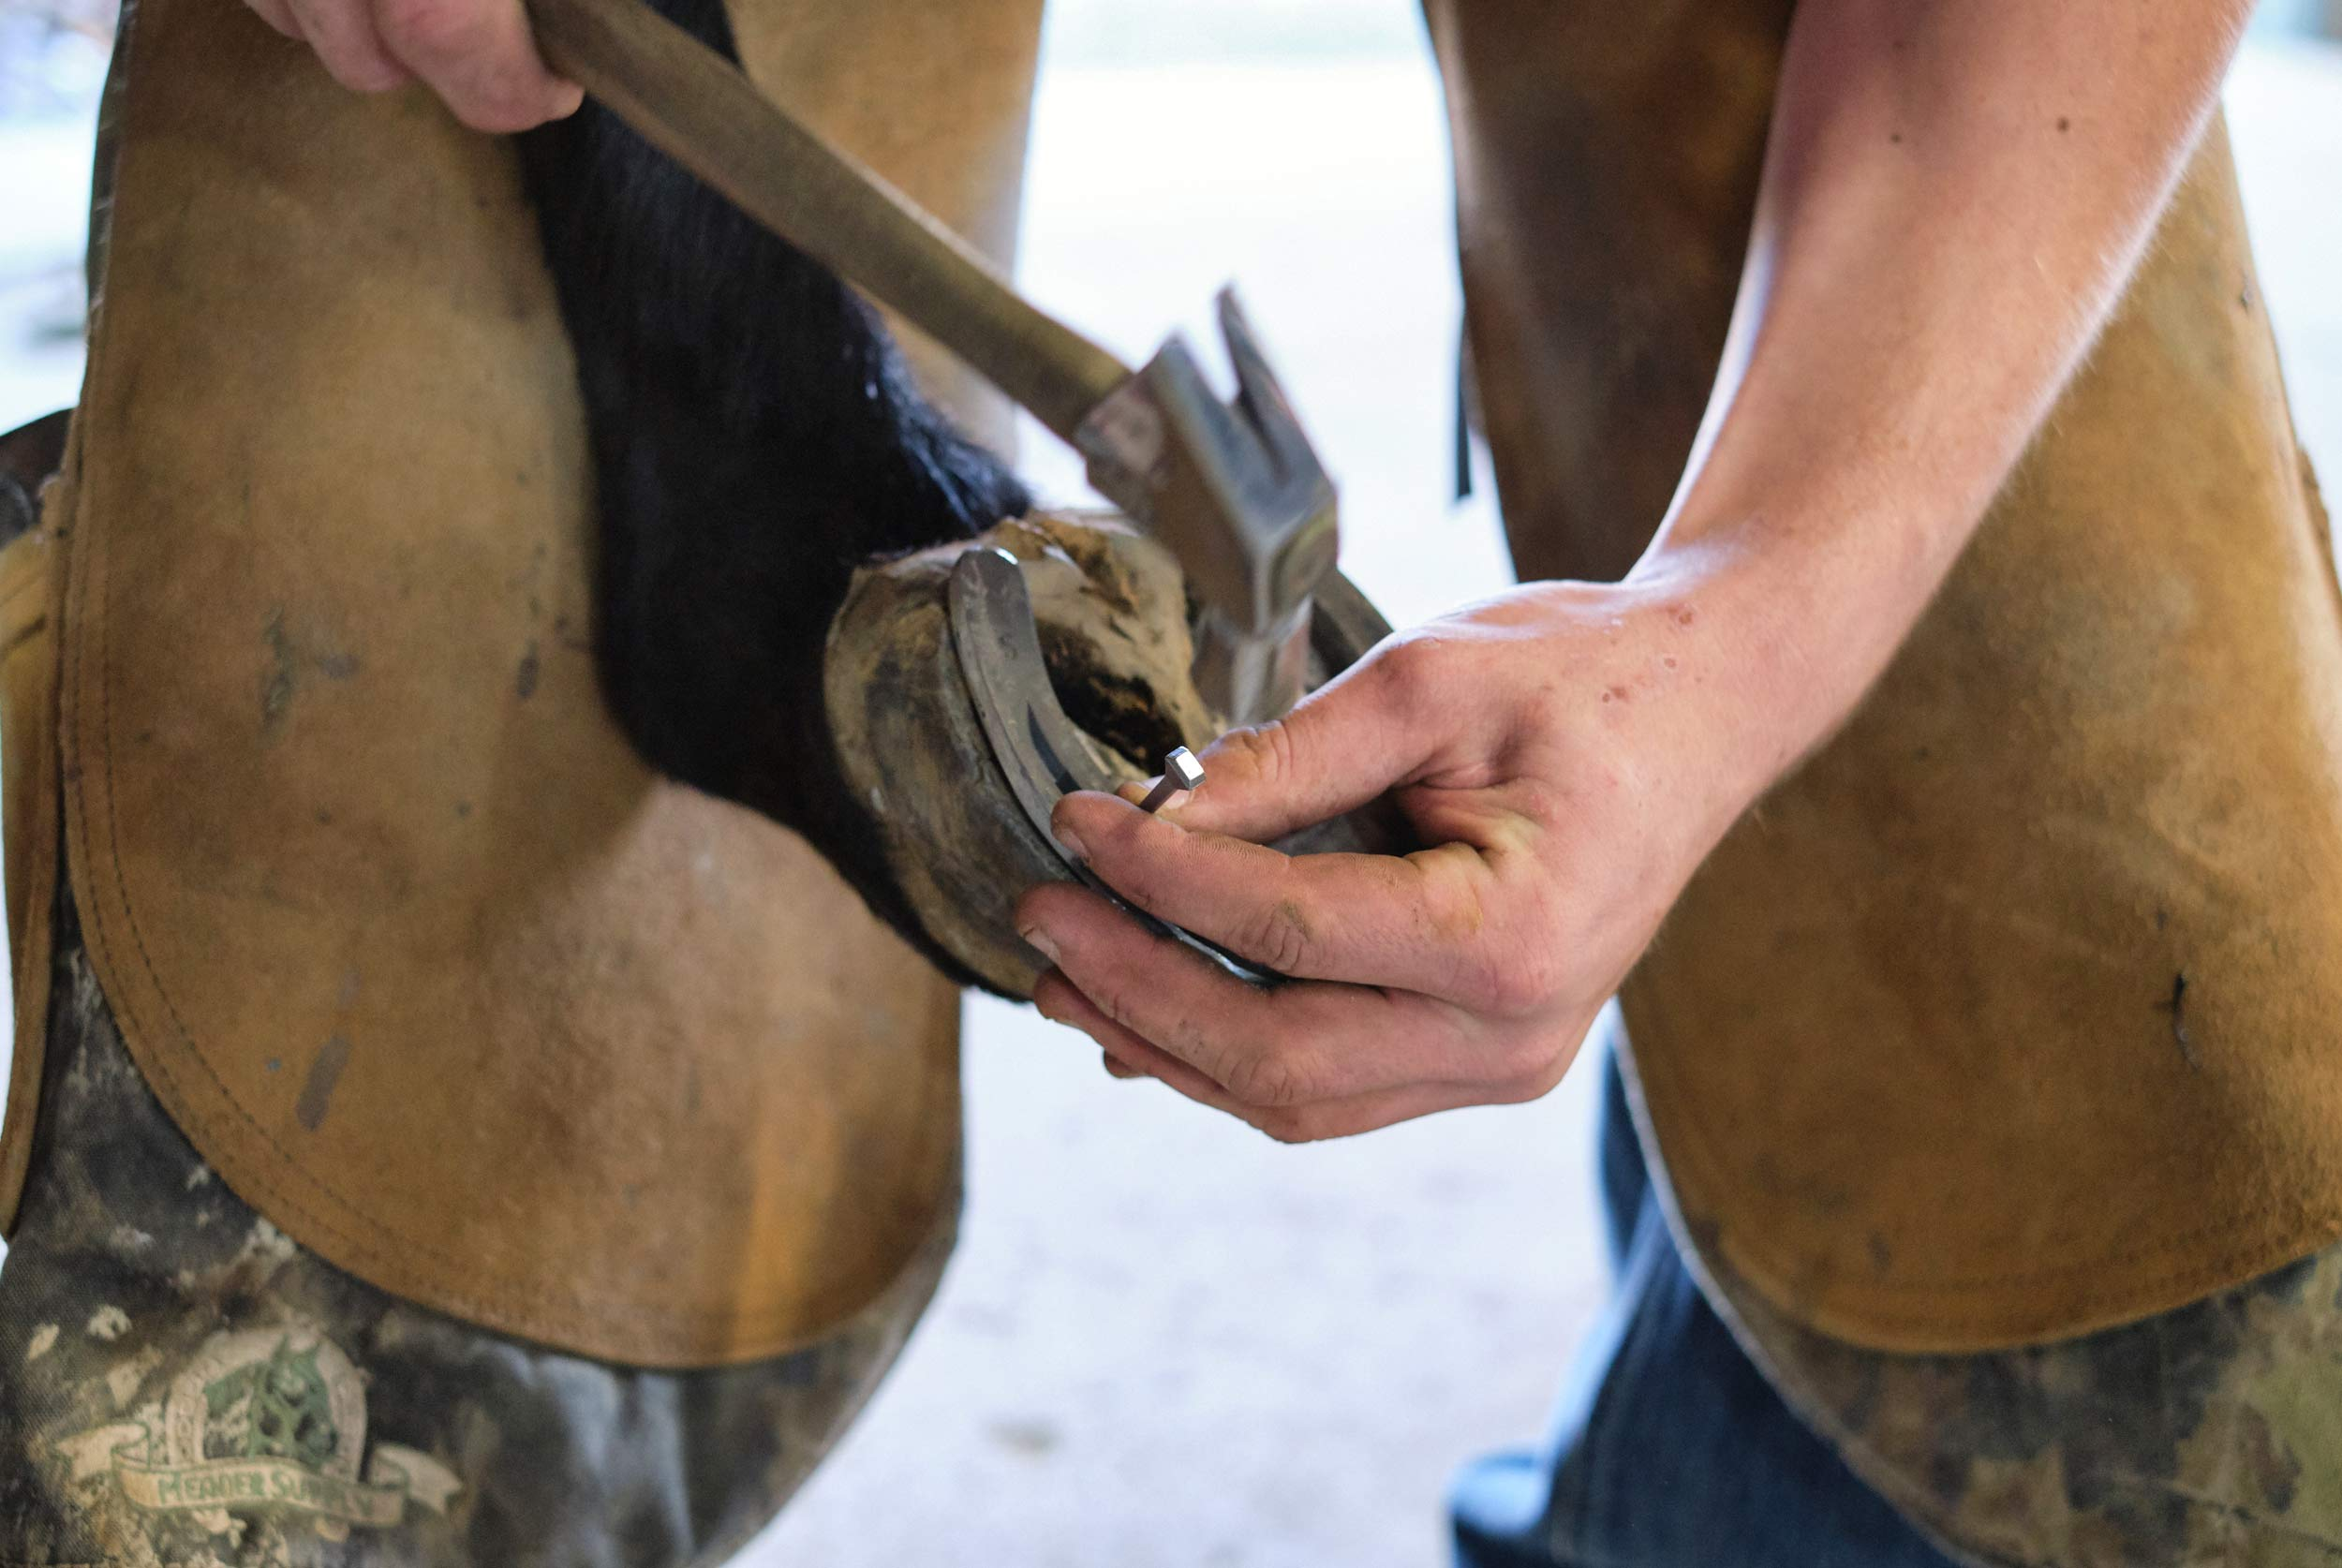 A Student Nails a Horseshoe onto the Hoof